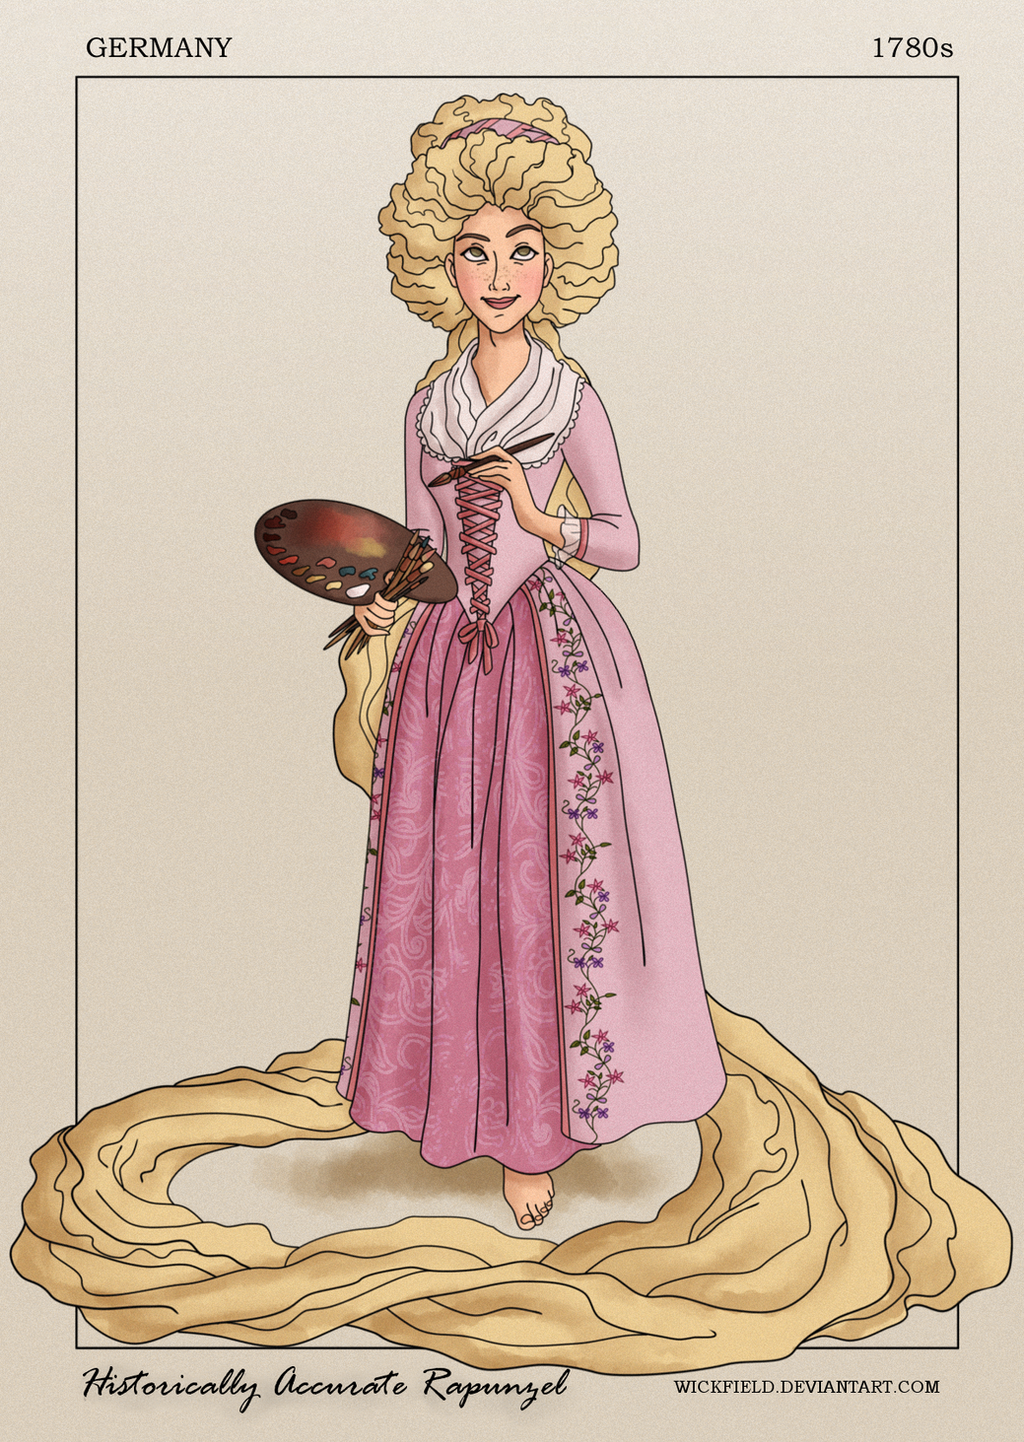 Historically Accurate Rapunzel by Wickfield